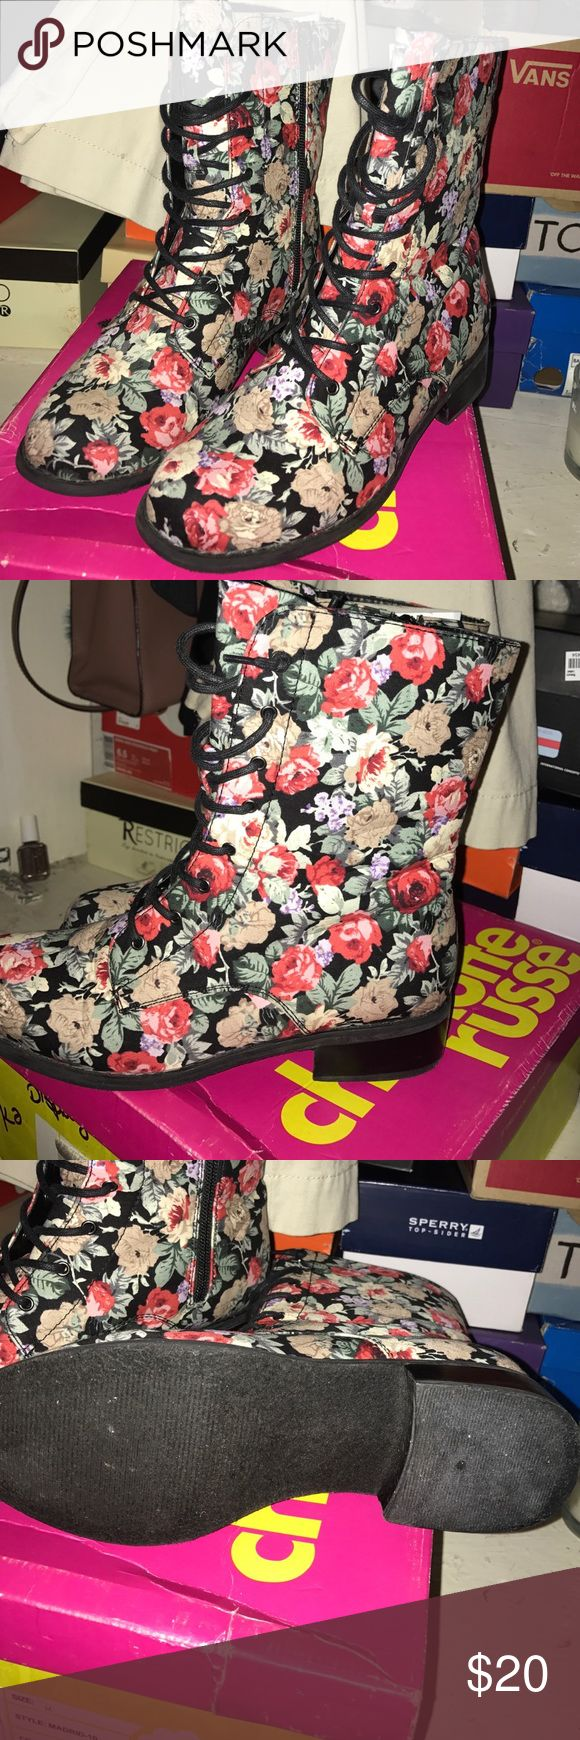 Floral combat boots Vintage boots, worn once! Comes with box 10/10 condition Charlotte Russe Shoes Ankle Boots & Booties